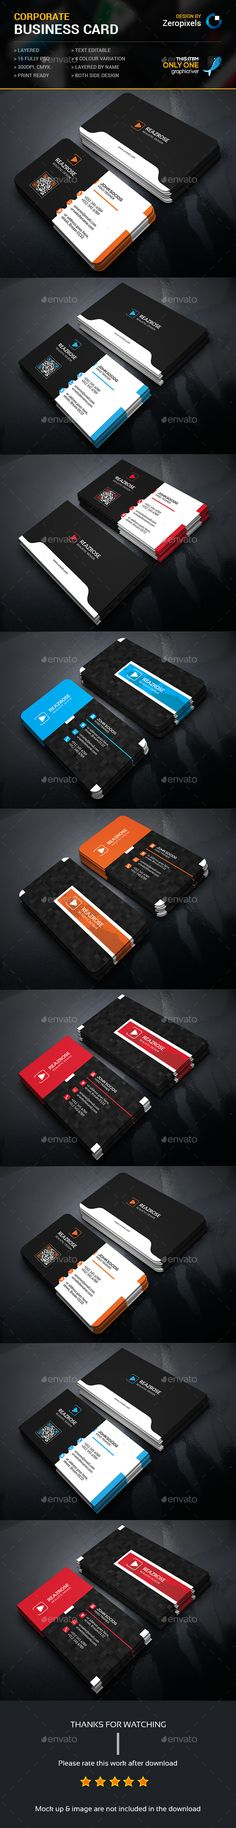 Business Card Bundle — Photoshop PSD #official #designer • Available here → https://graphicriver.net/item/business-card-bundle/15911246?ref=pxcr